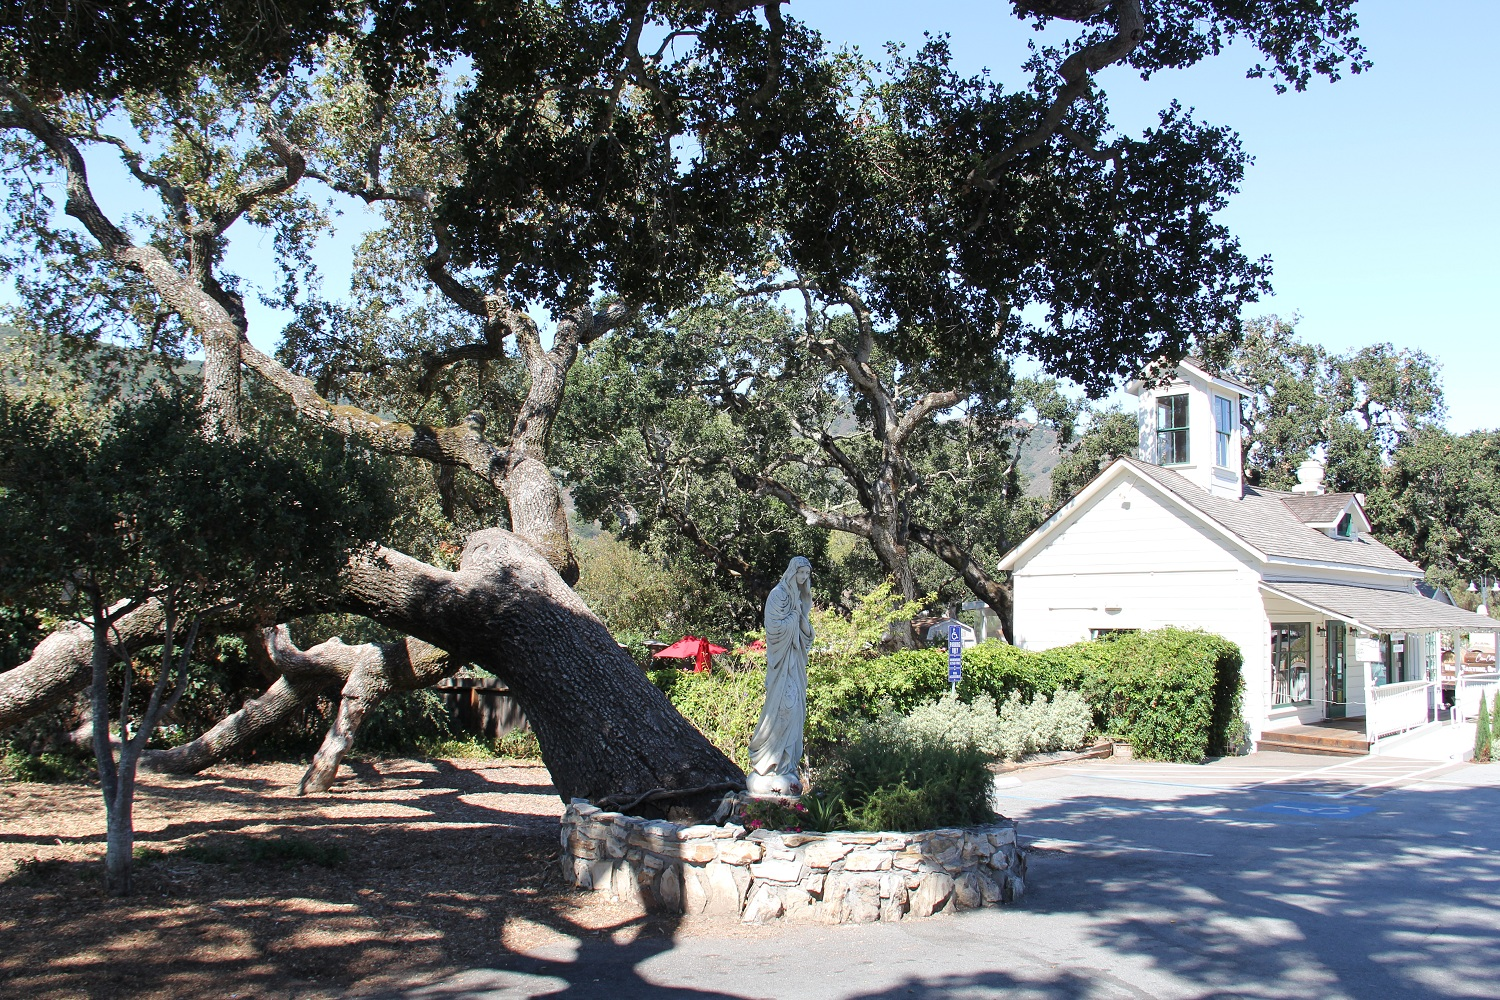 08_Great_Carmel_Valley_Oaks